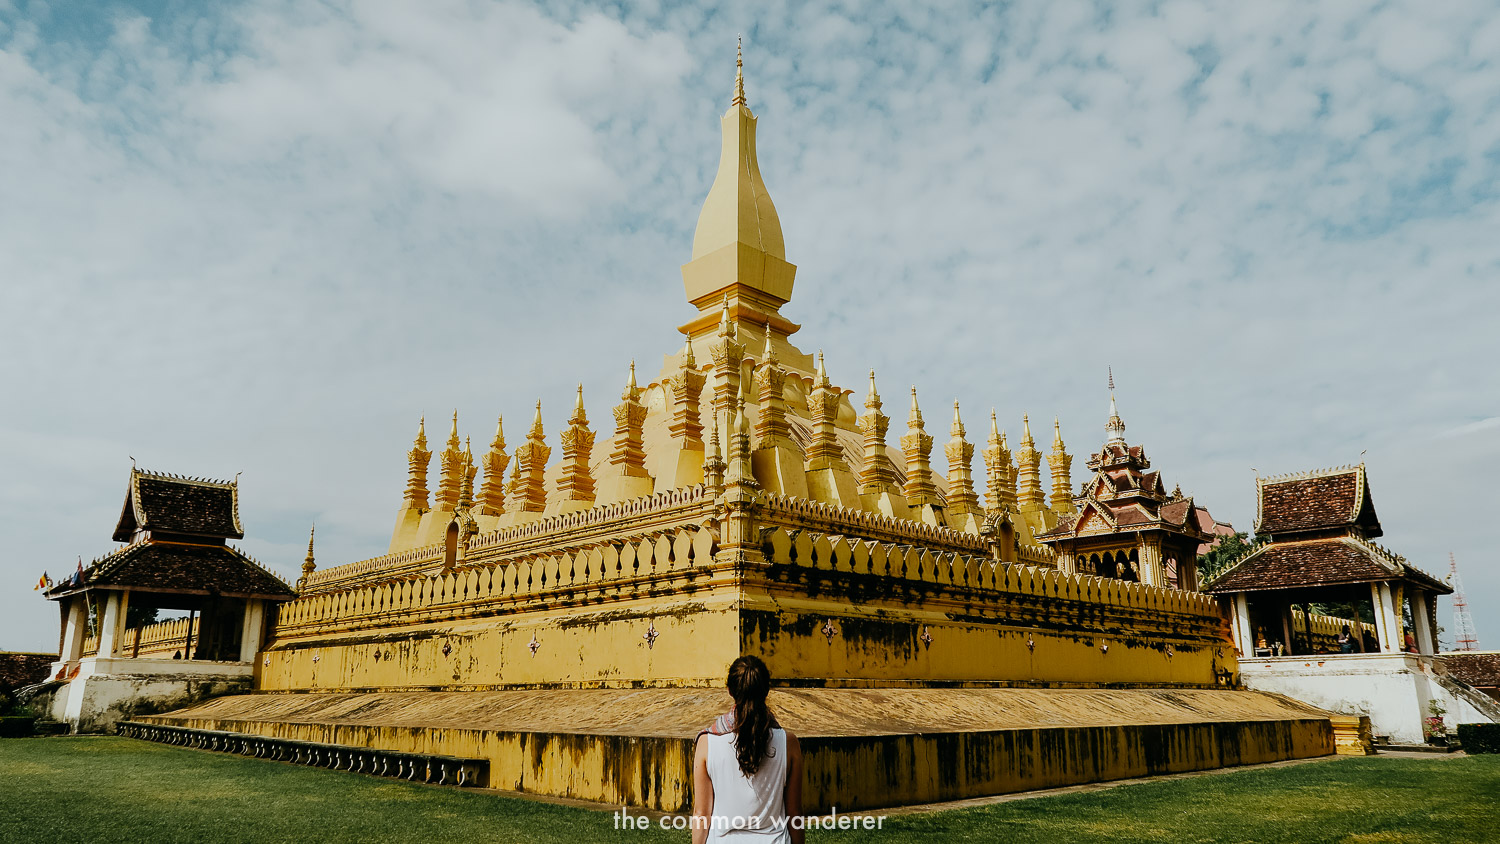 The best things to do in Laos include visiting Pha That Luang Stupa in Vientiane